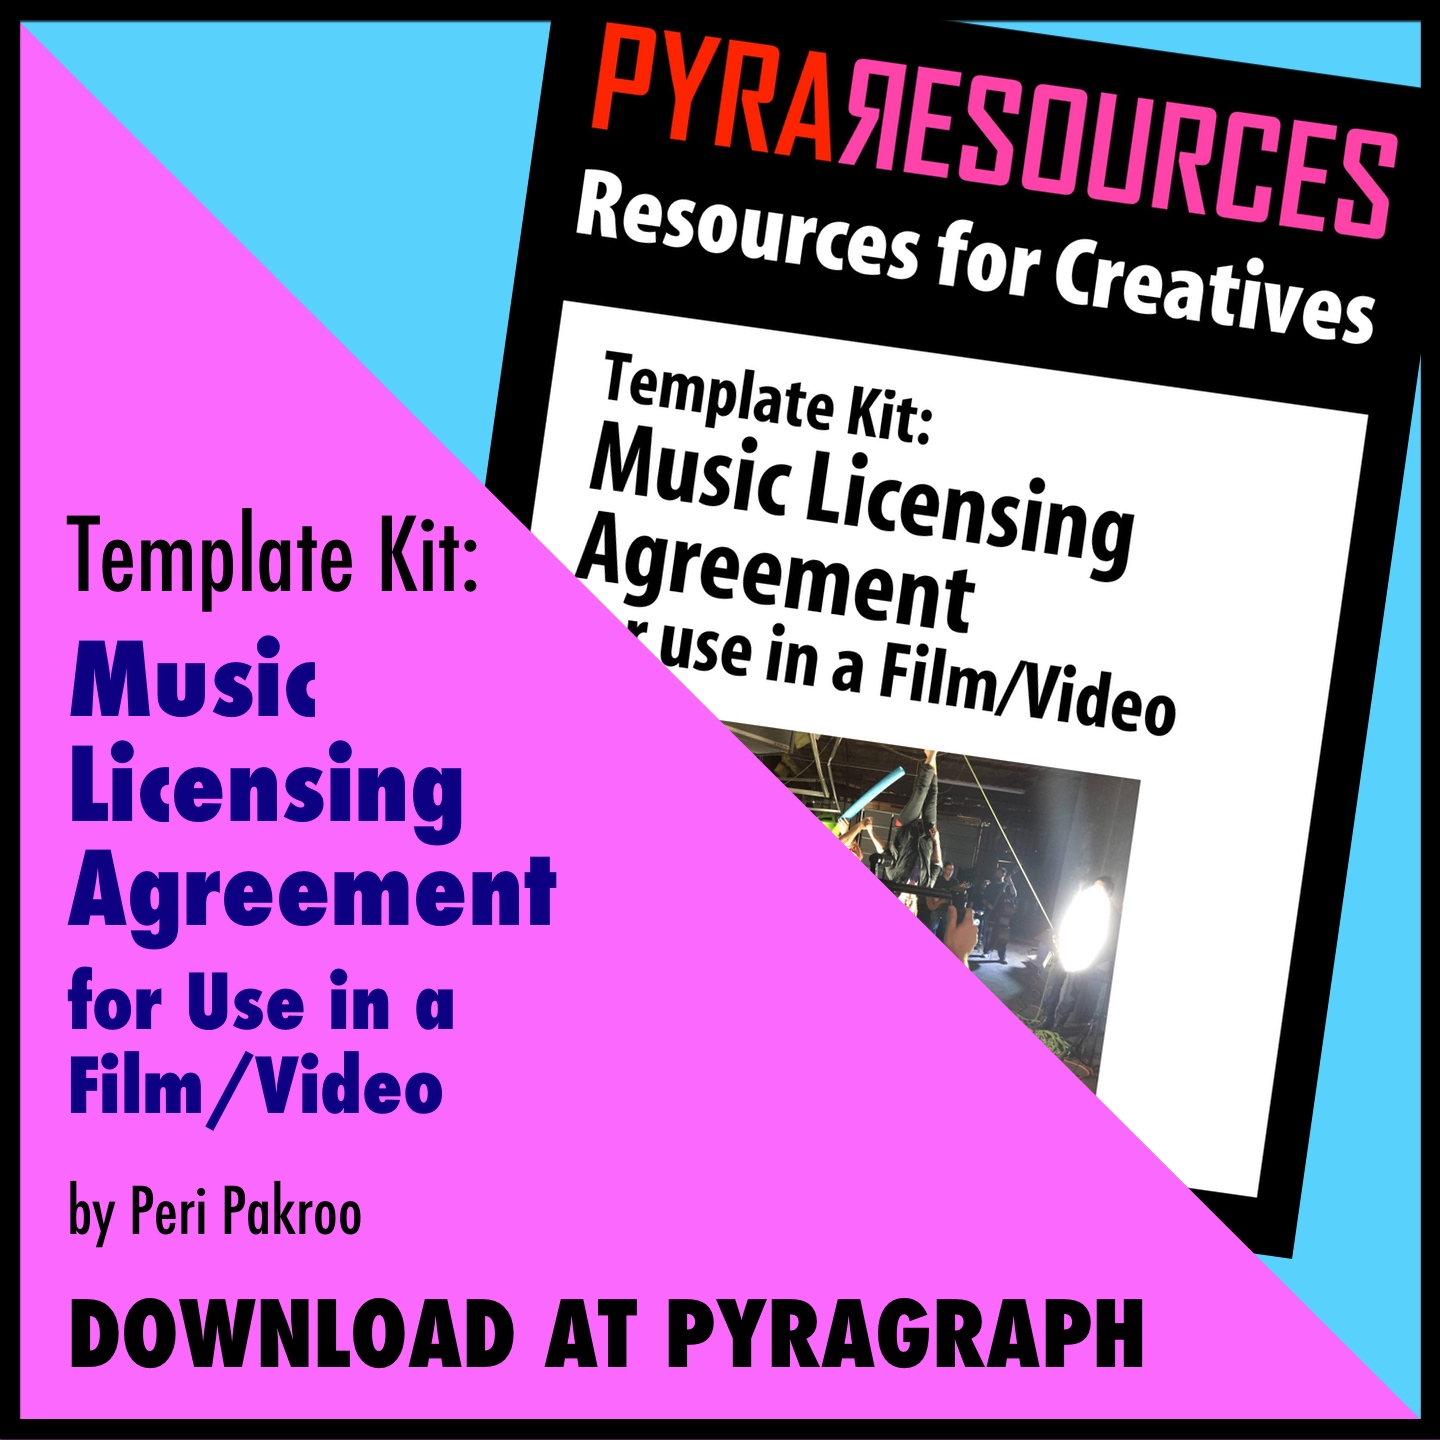 Music Licensing Agreement For Use In A Filmvideo Template Kit